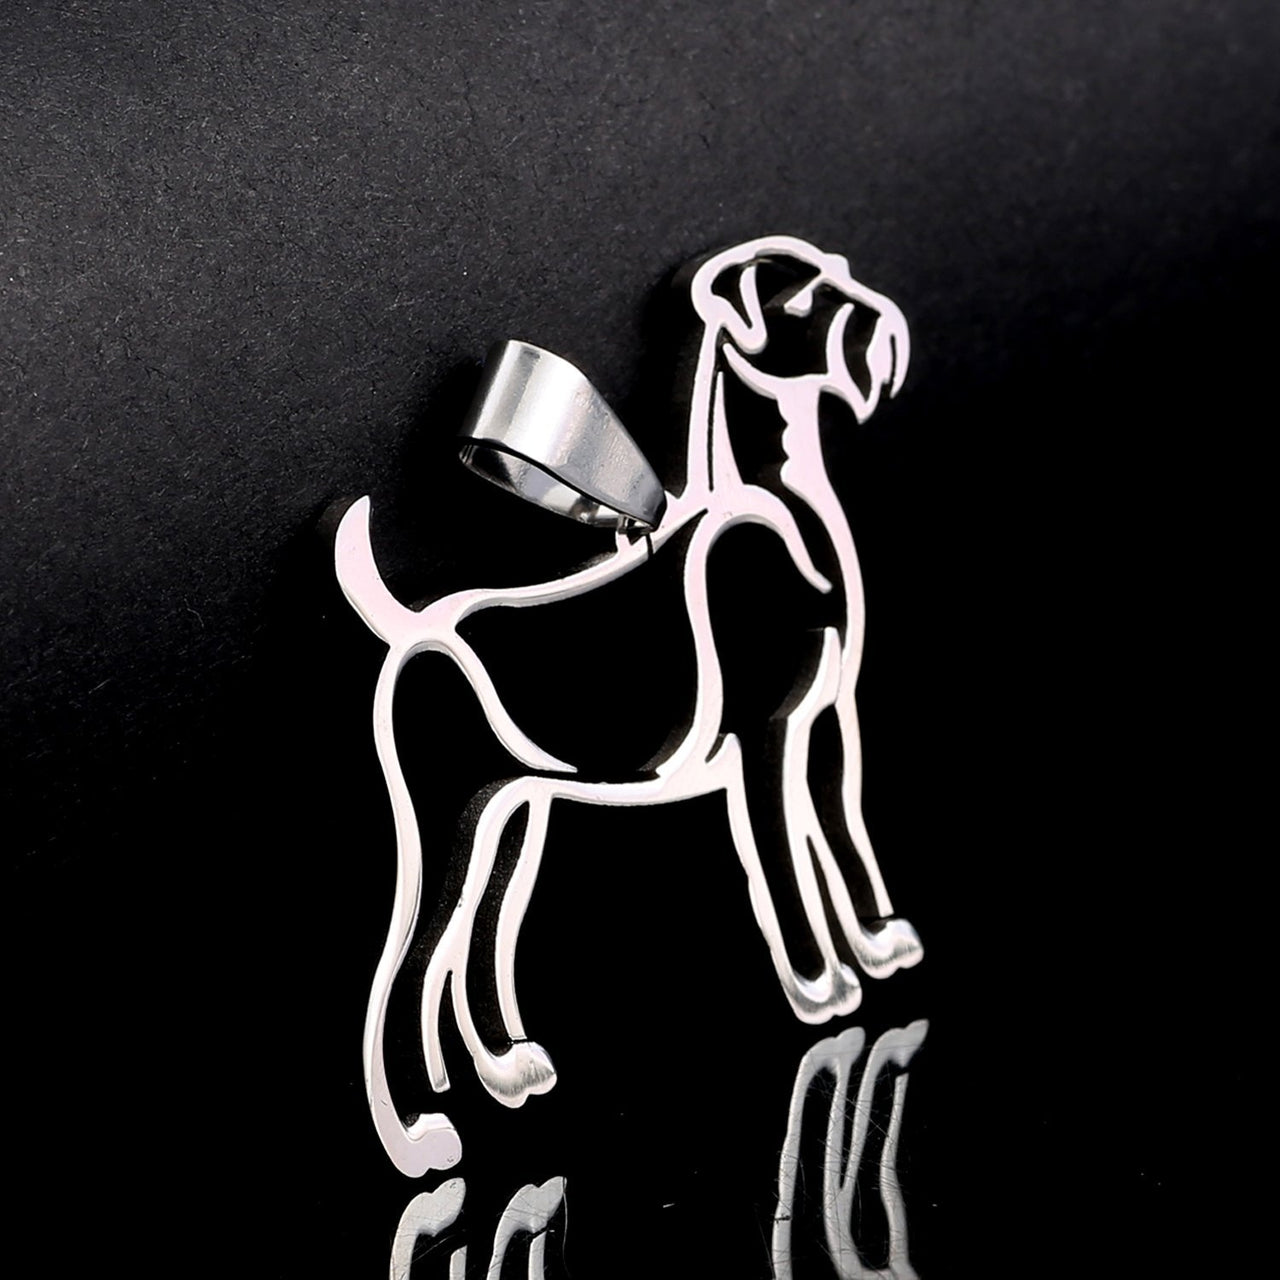 Stainless Steel Airedale Outline Silhouette Pet Dog Charm Pendant Necklace